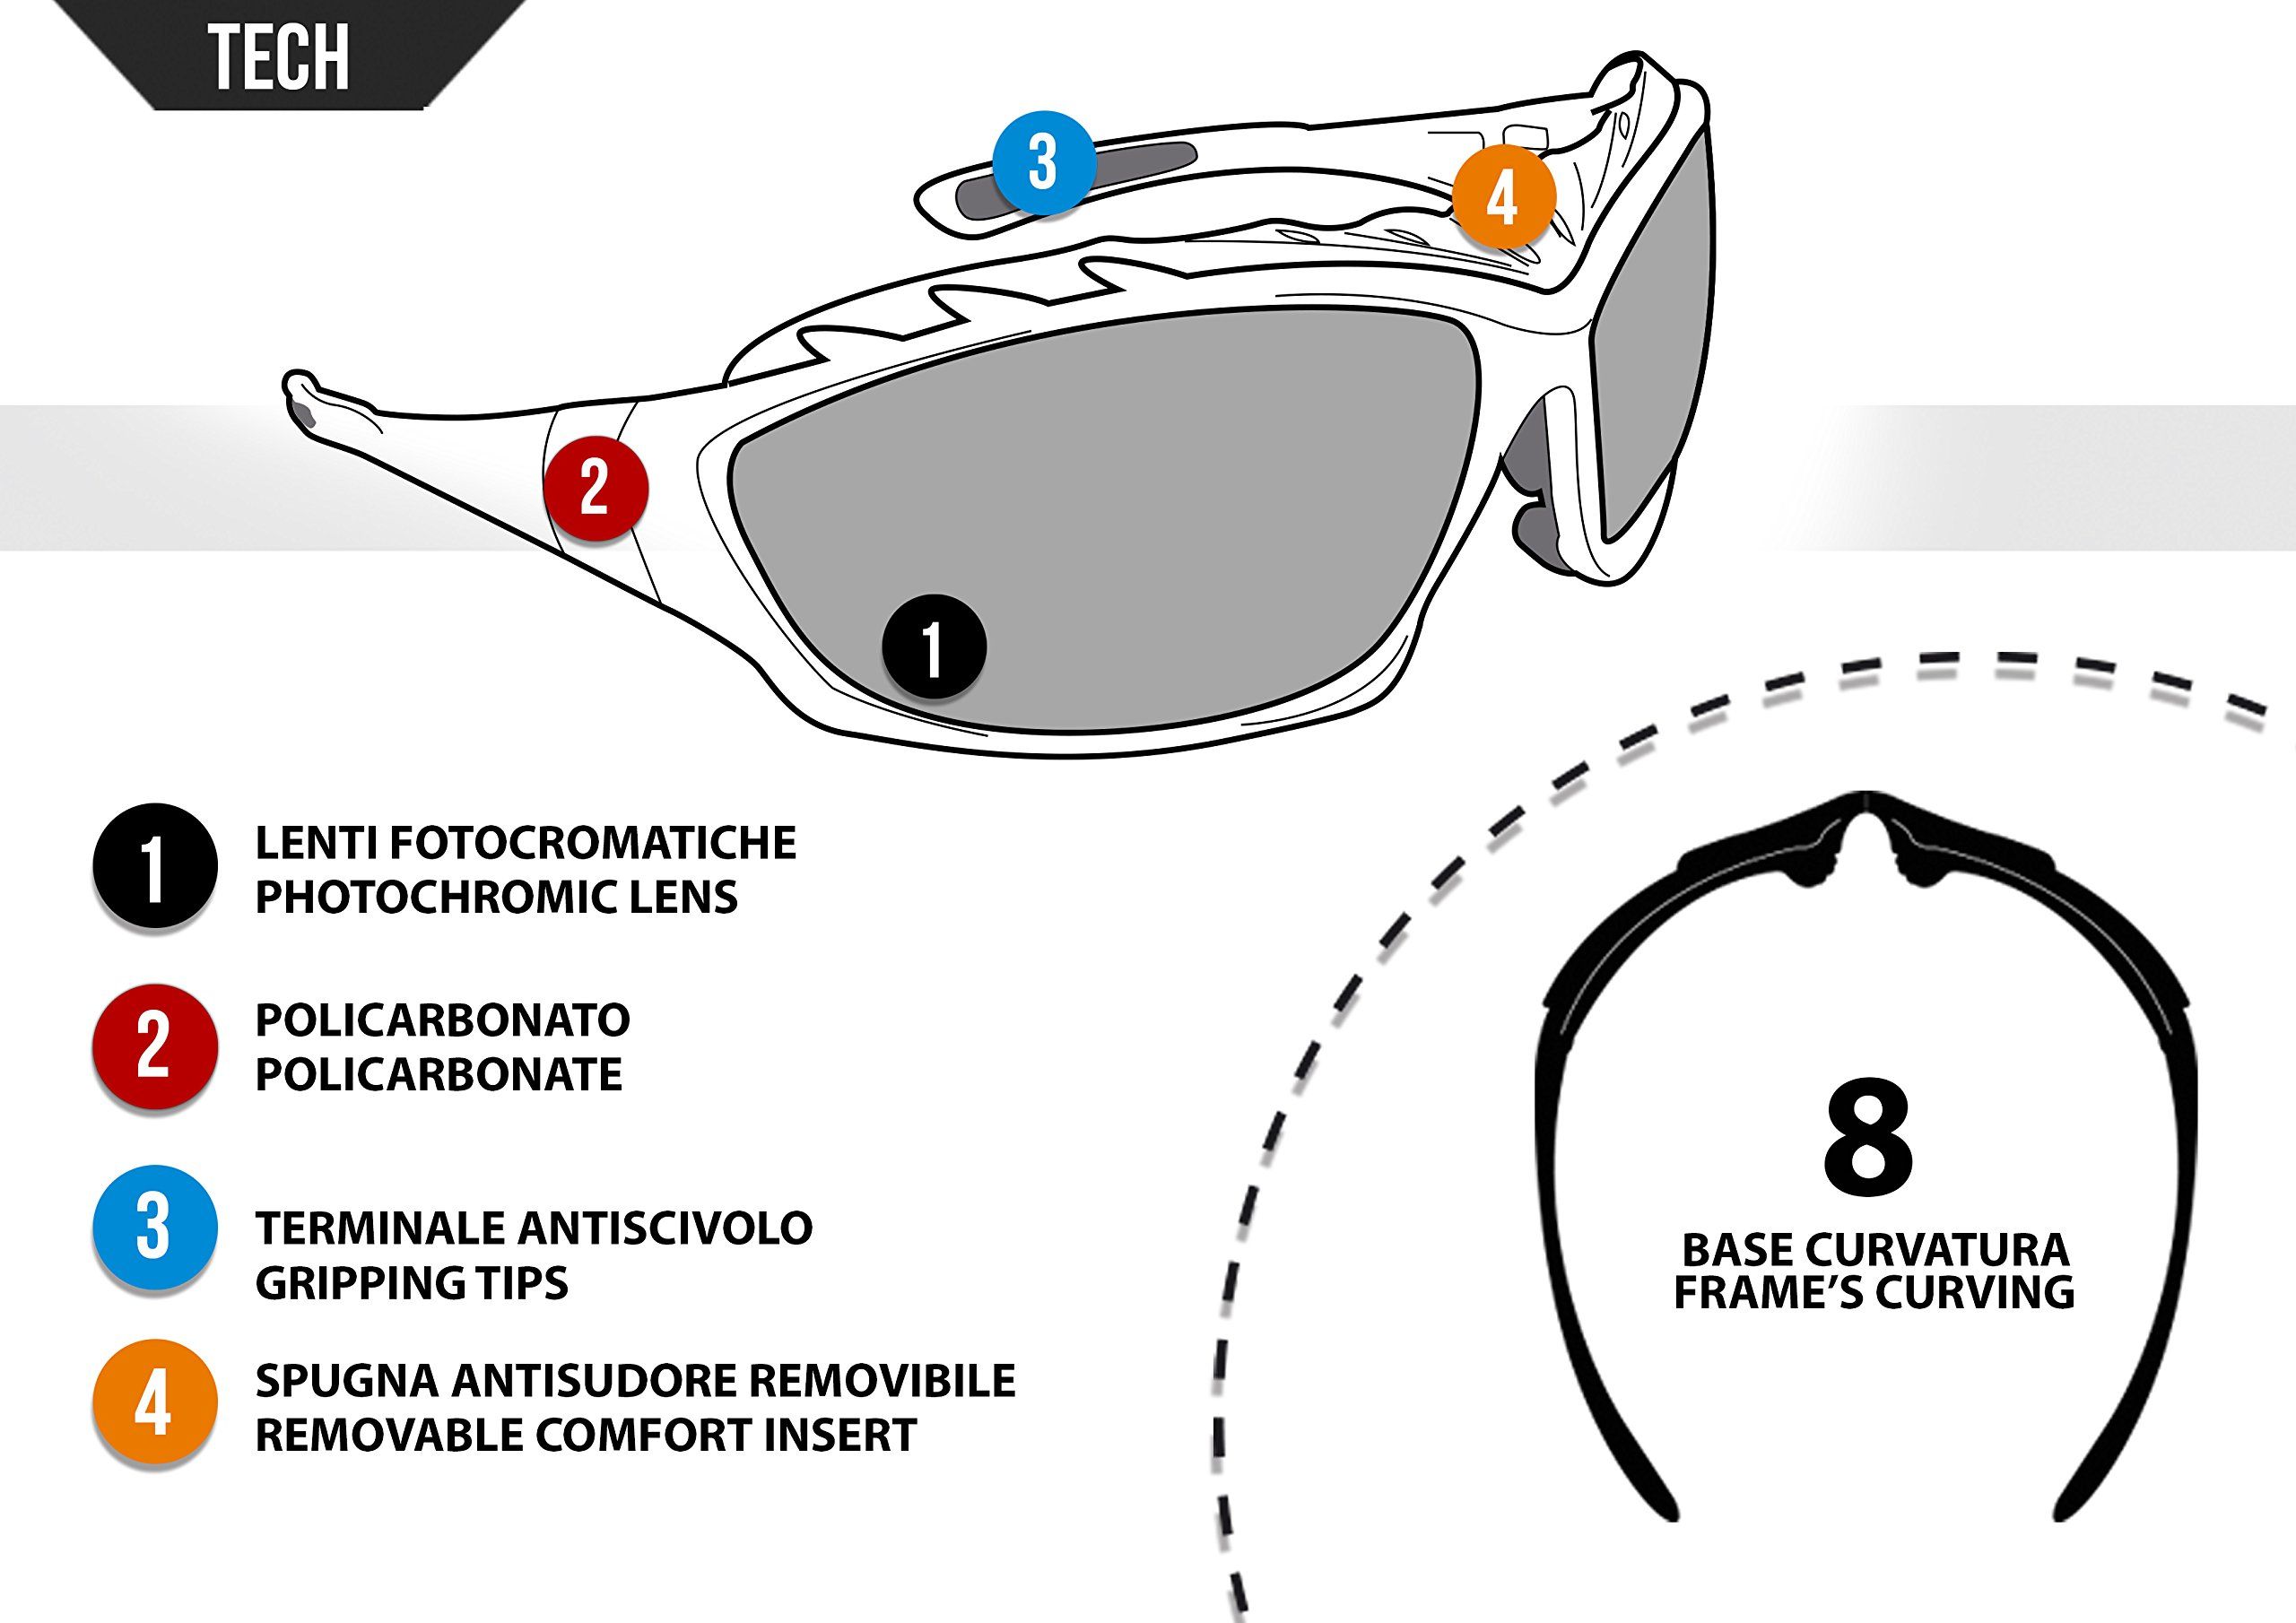 Bertoni Motorcycle Goggles Padded Sunglasses - Photochromic Antifog Lens - Removable Clip for Prescription Lenses - Interchangeable Arms and Strap - by Bertoni Italy F366A Motorbike Bikers Glasses by Bertoni (Image #4)